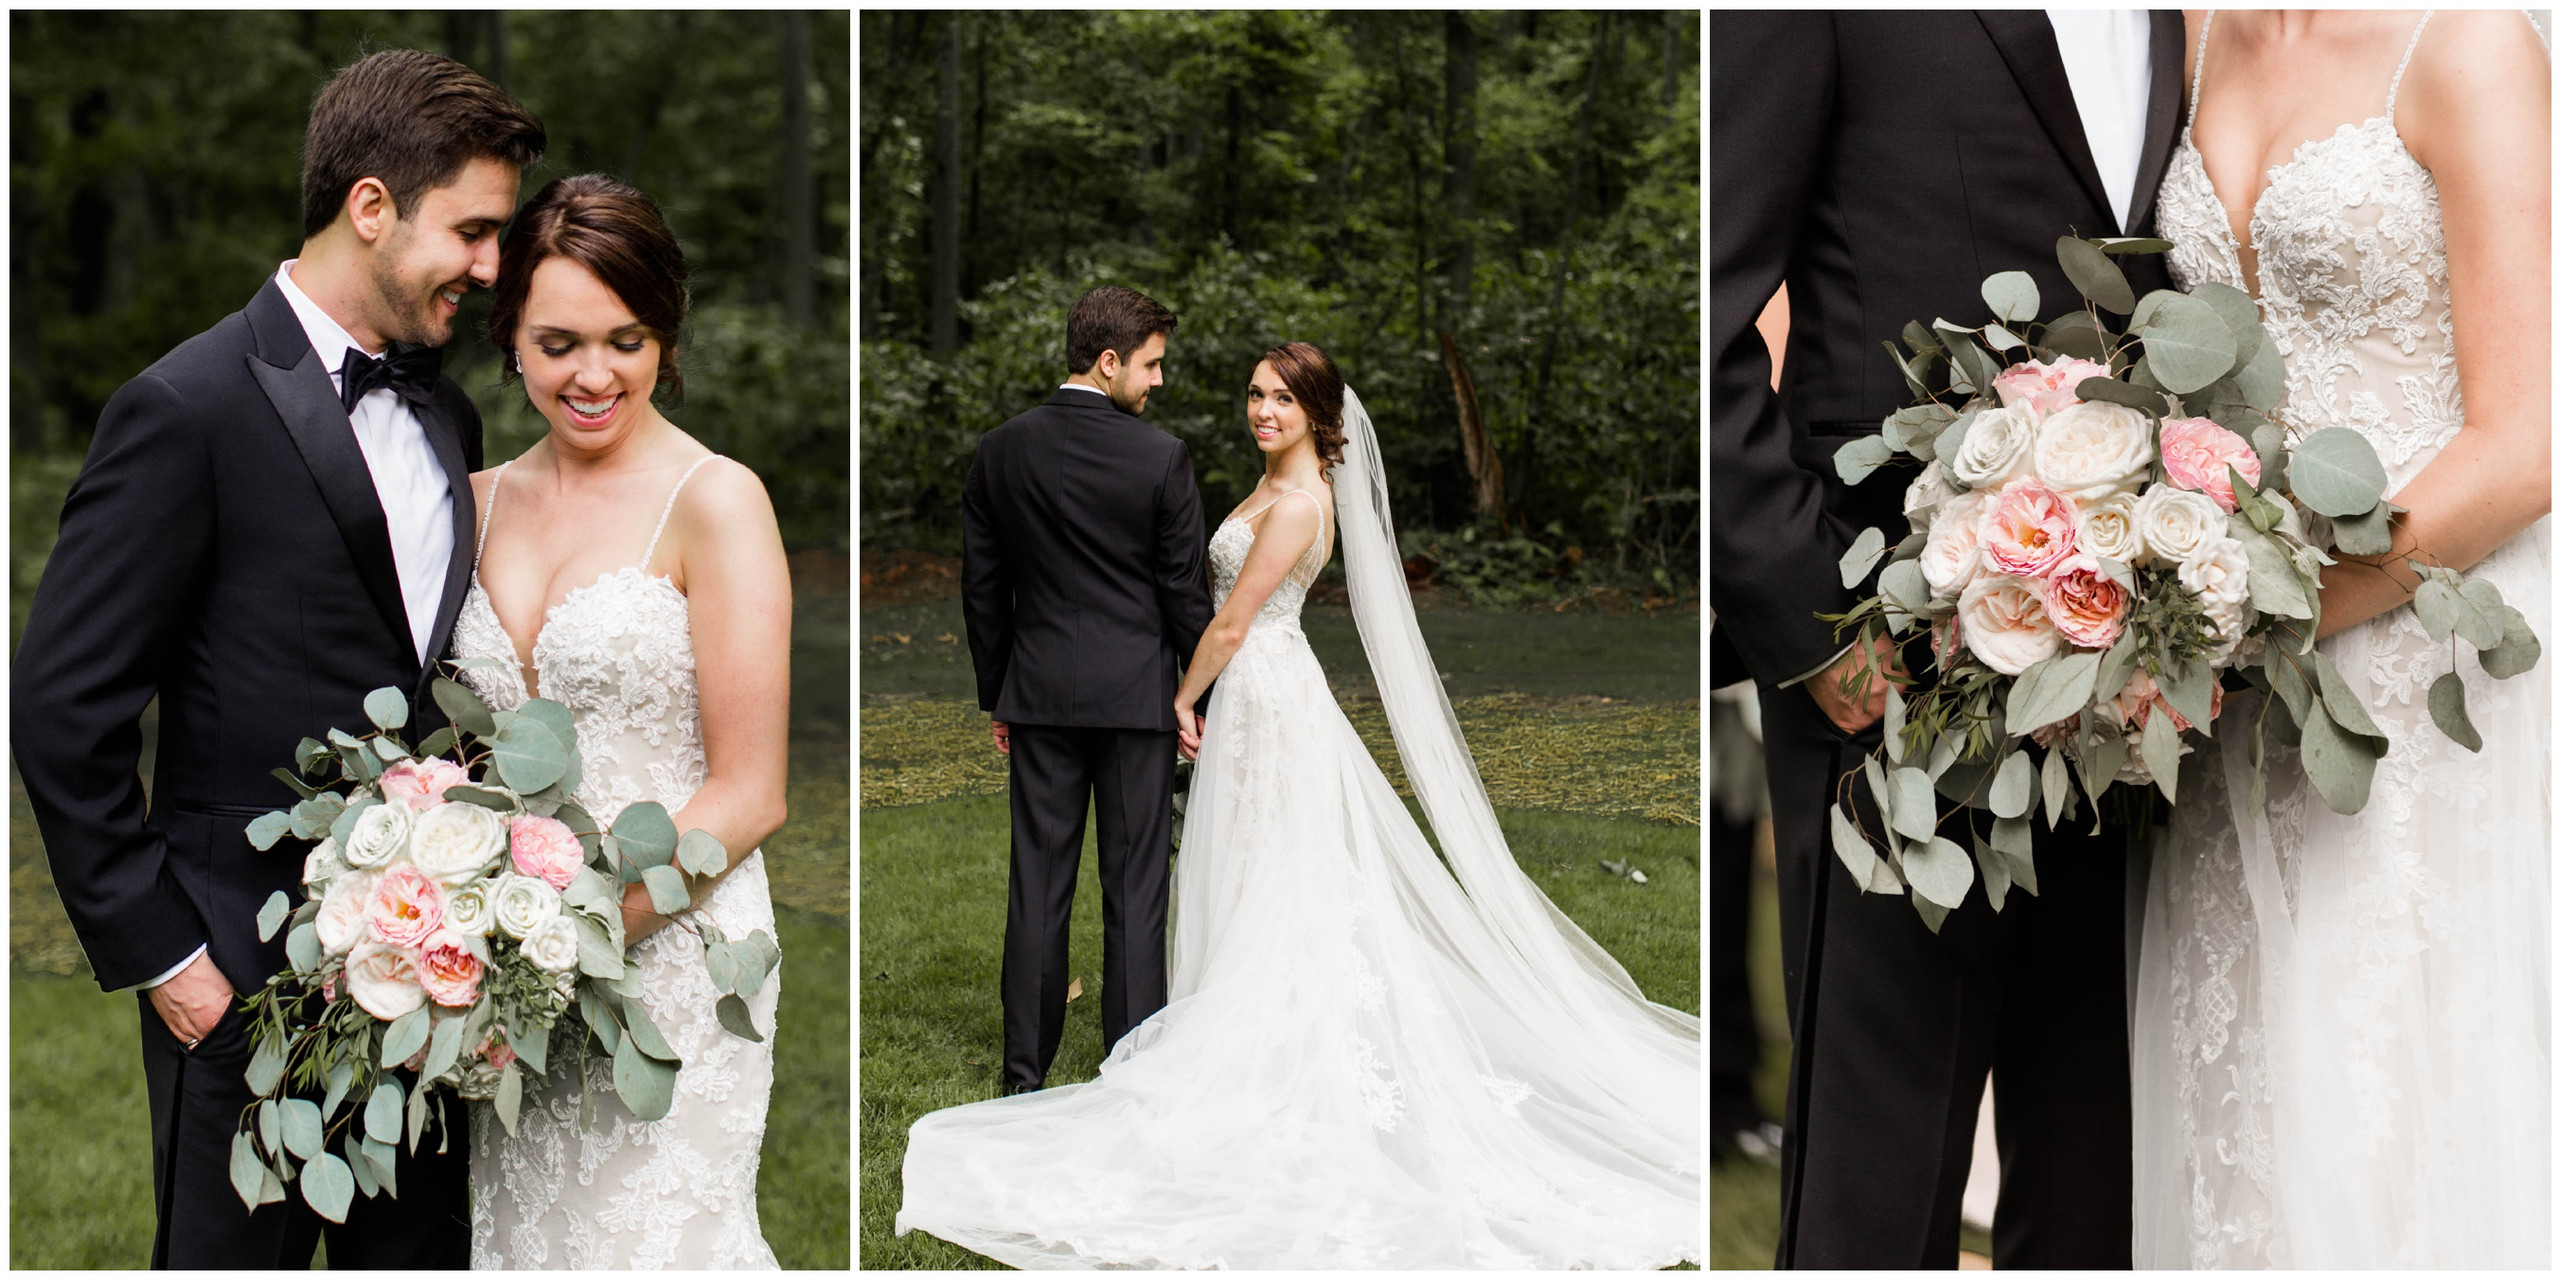 The-wooded-knot-weddings-and-events